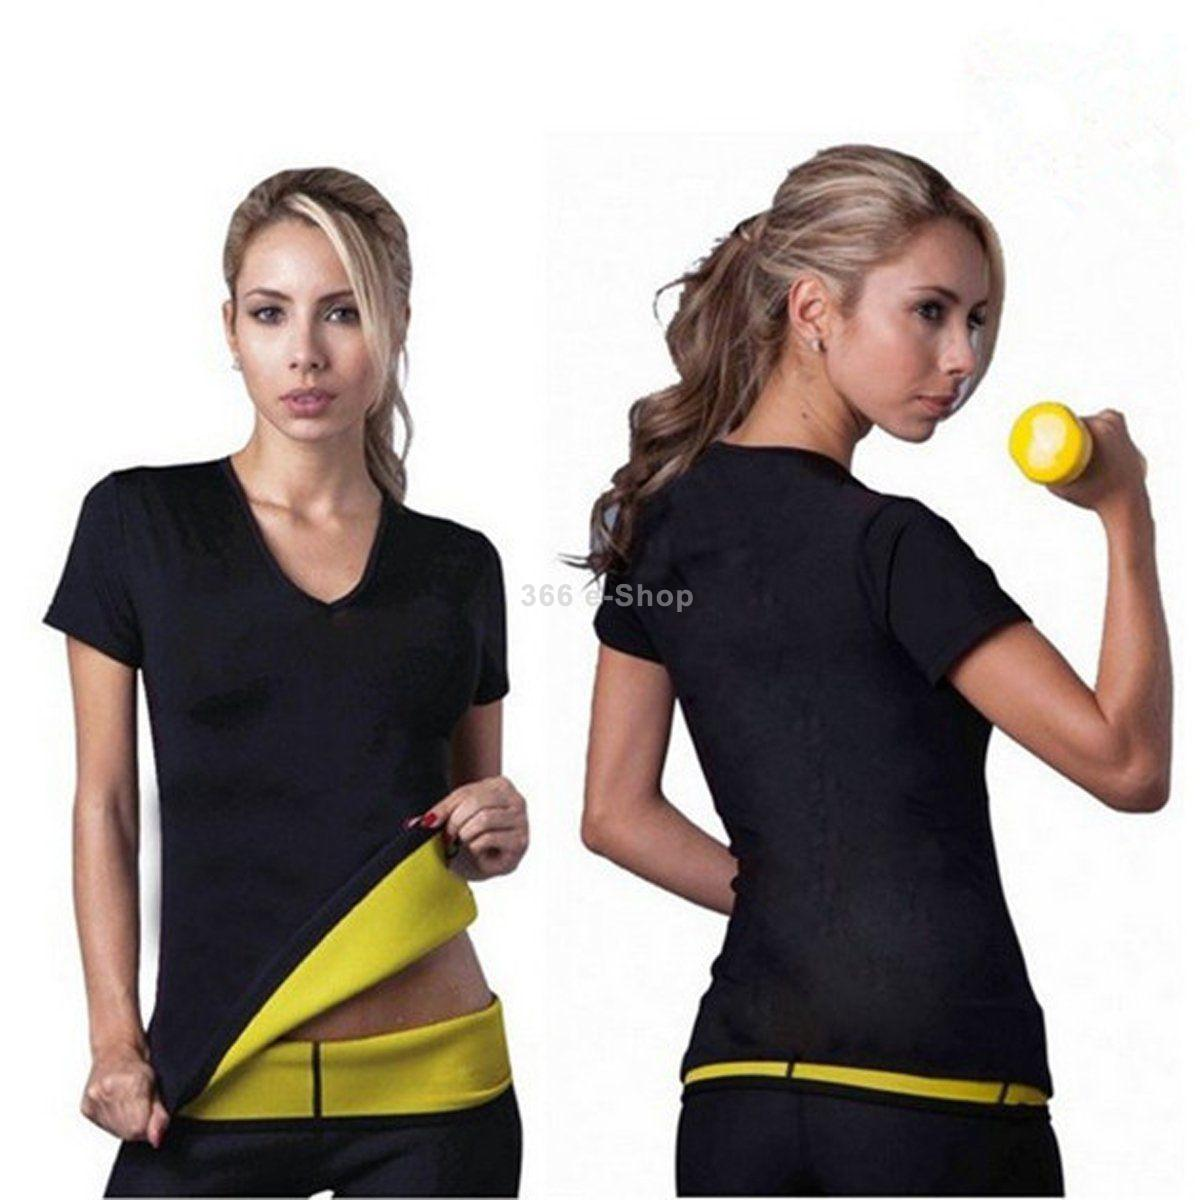 Women Hot Neoprene Body Shaper Slimming Waist Slim Shapewear ShirtsОдежда и ак�е��уары<br><br><br>Aliexpress